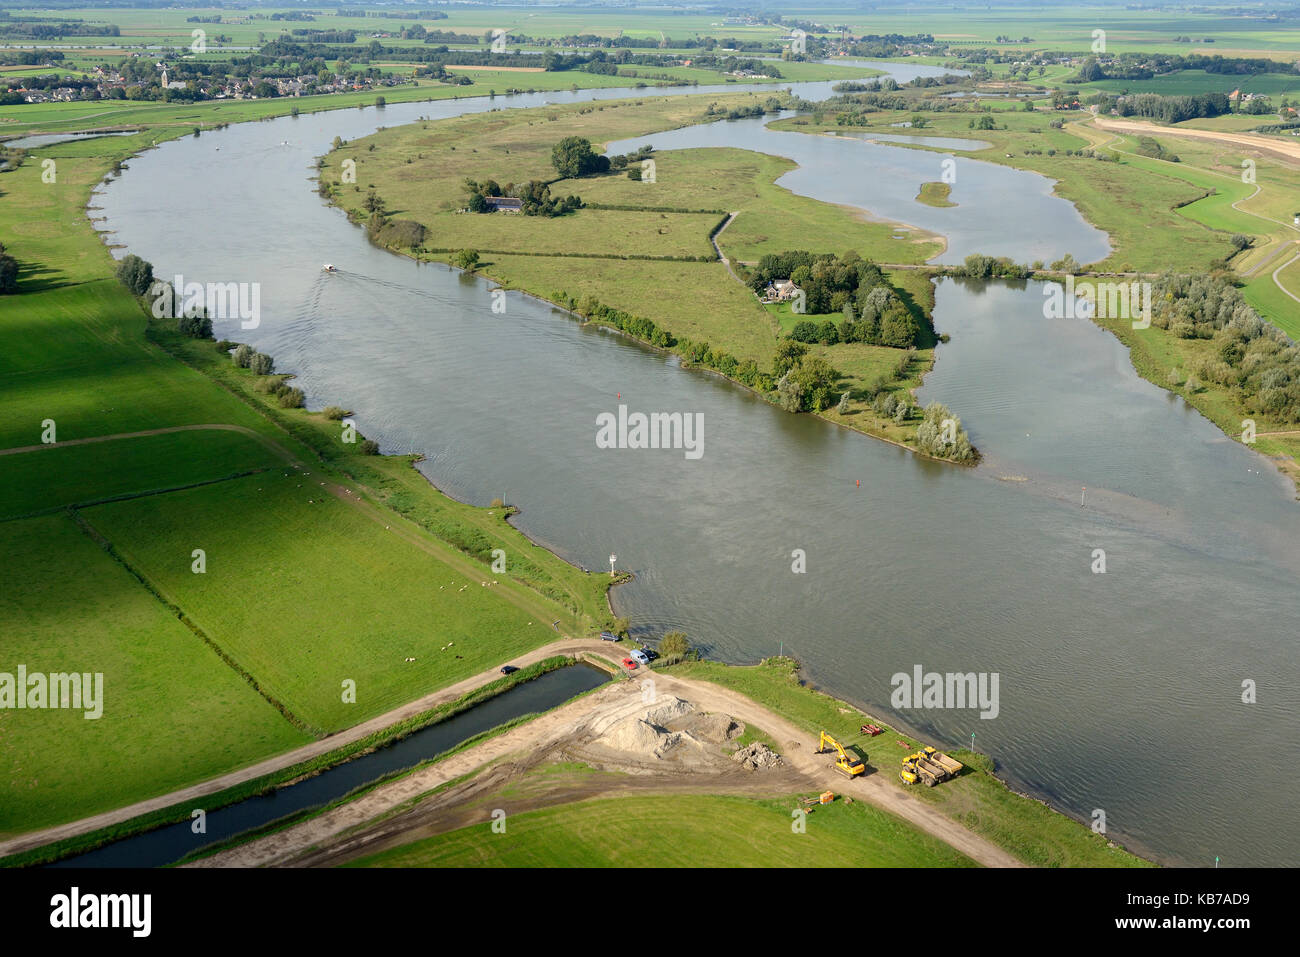 The Vreugderijkerwaard (Natuurmonumenten) is a nature reserve on the east side of the river IJssel. An old riverarm Stock Photo